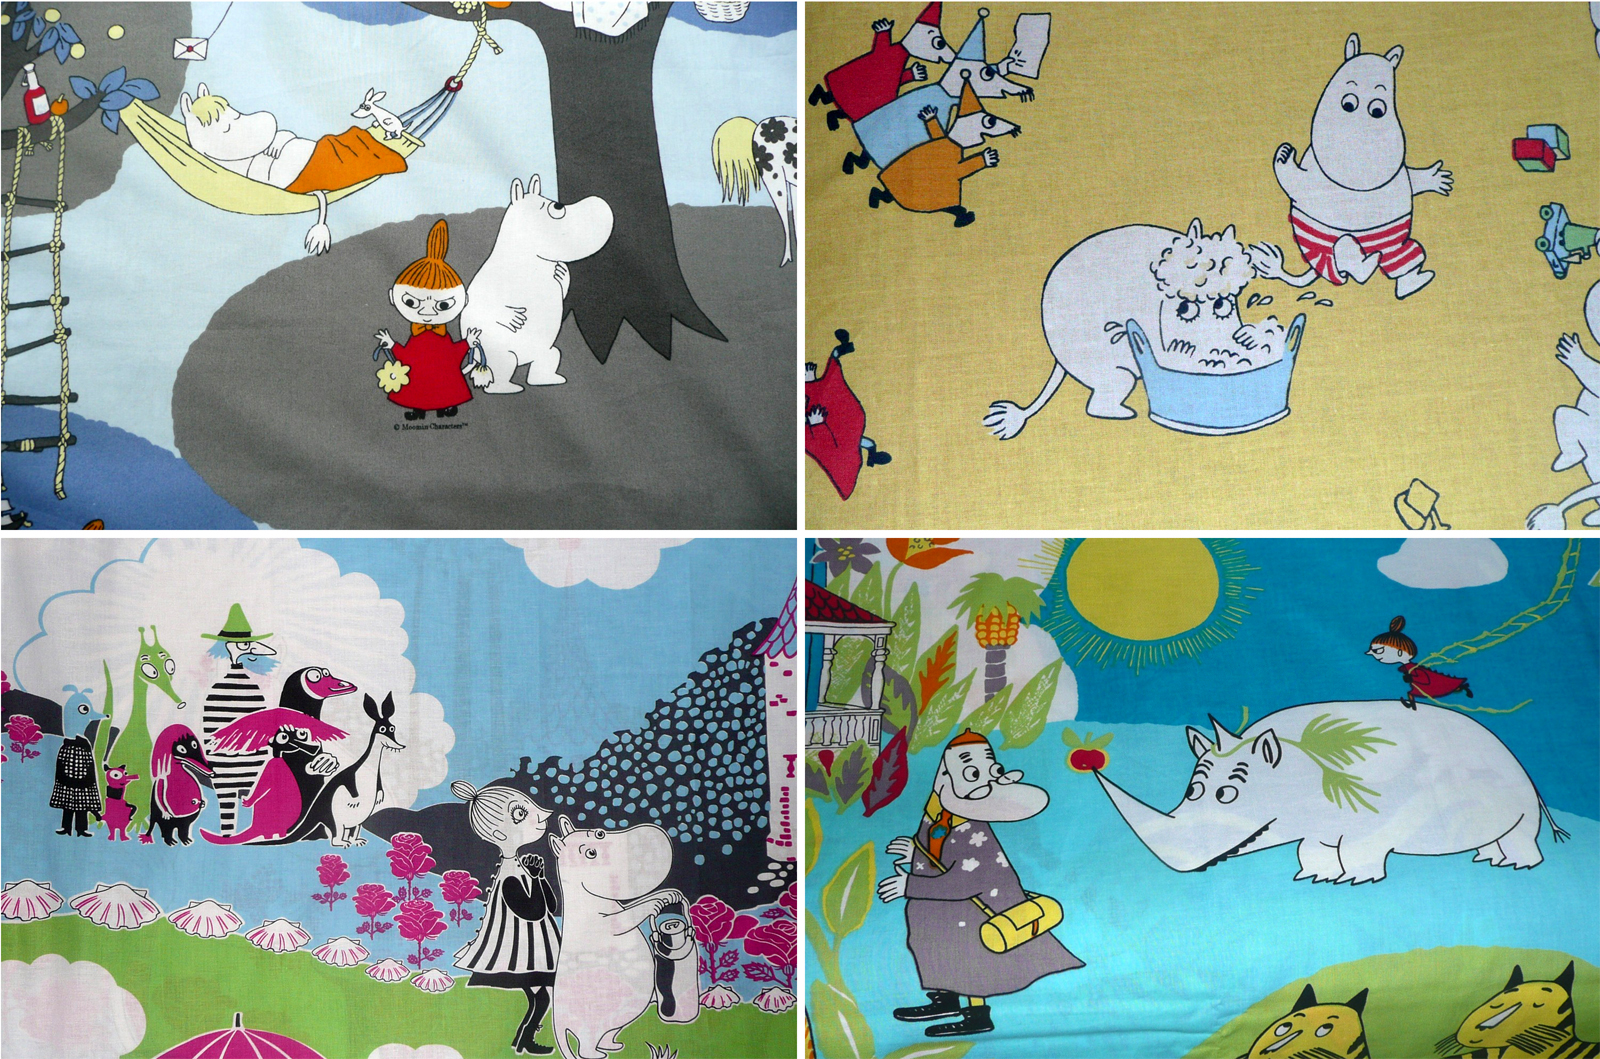 Moomin free cartoon